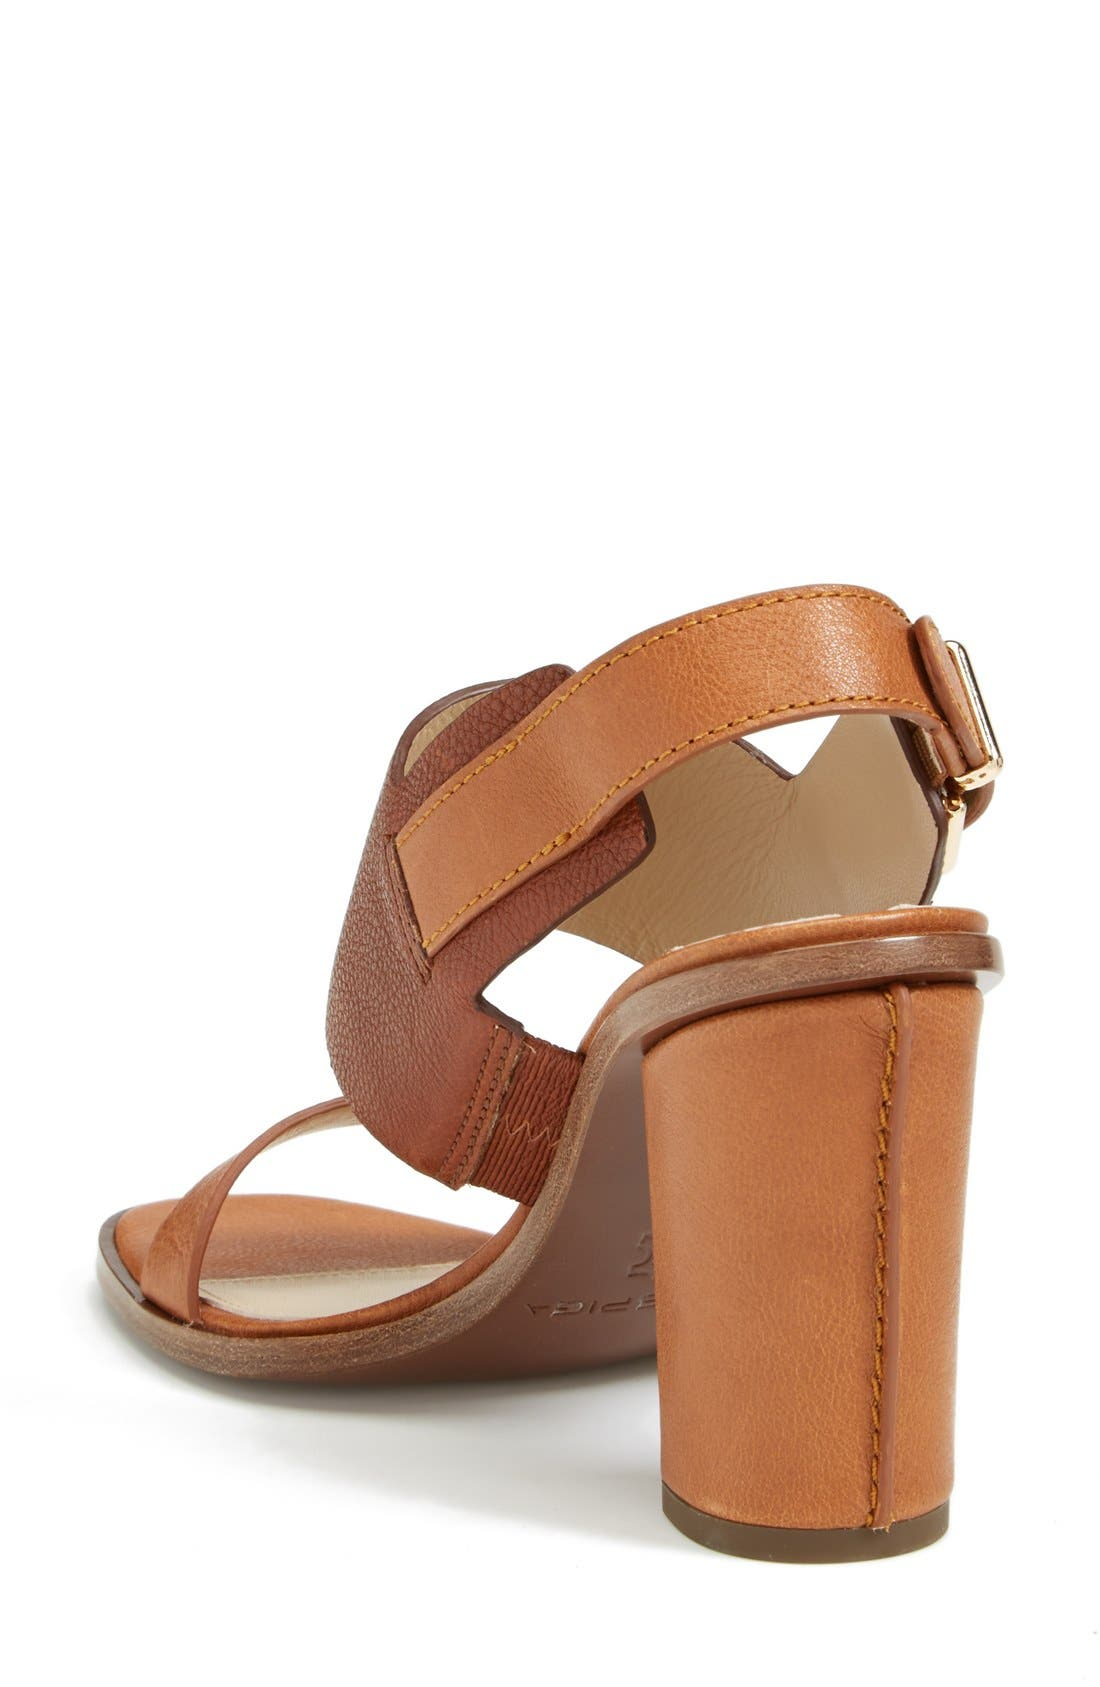 Alternate Image 2  - Via Spiga 'Baris' Leather Slingback Sandal (Women) (Nordstrom Exclusive)